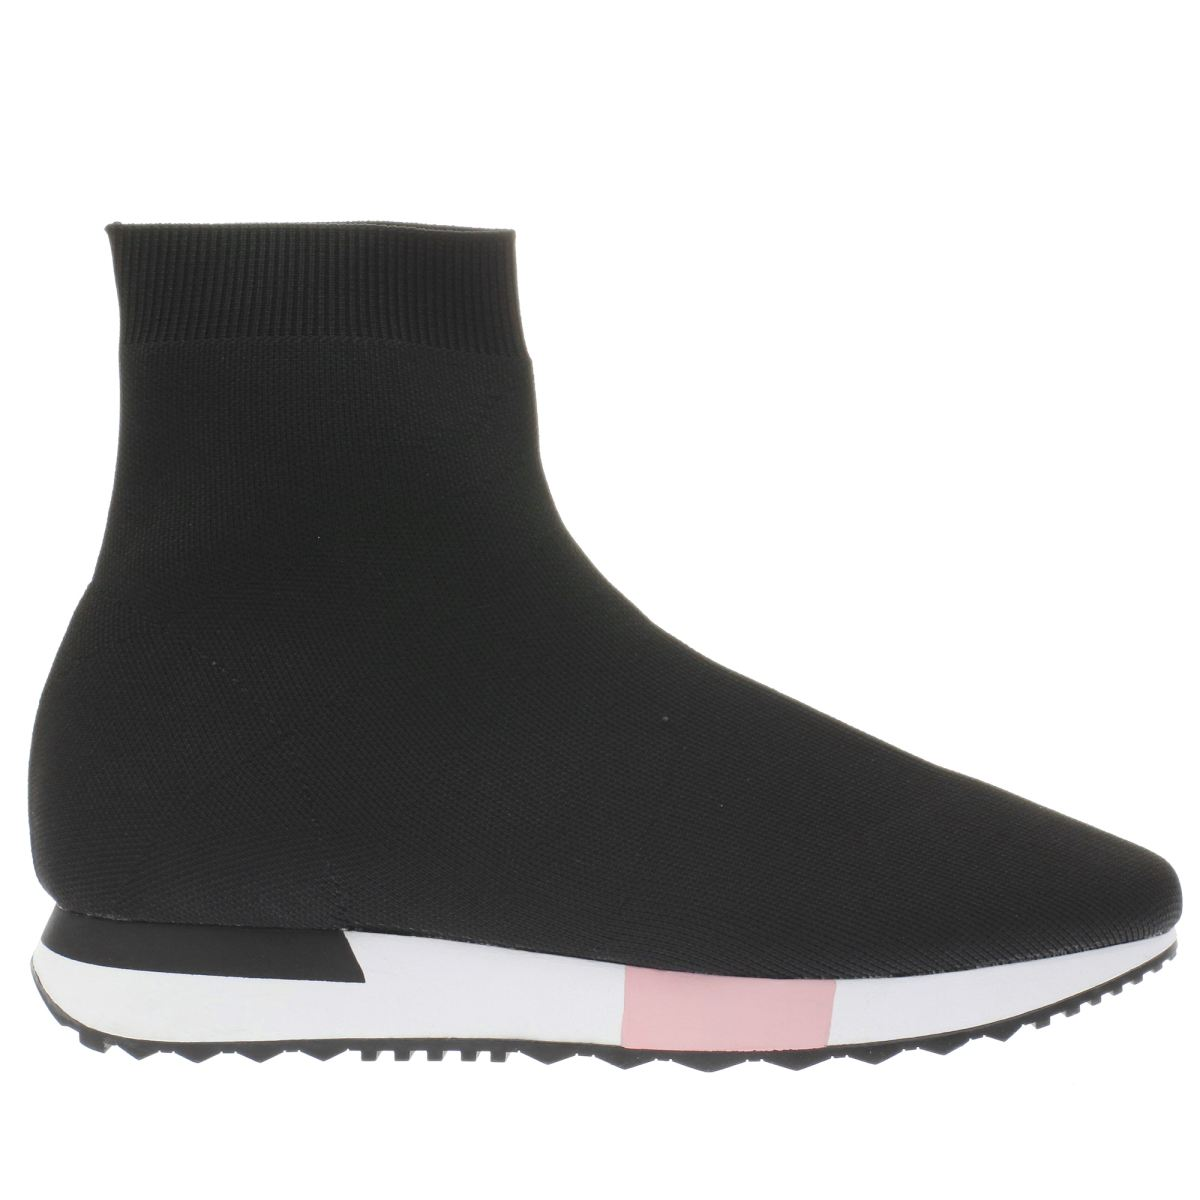 Schuh Black Broadcast Boots